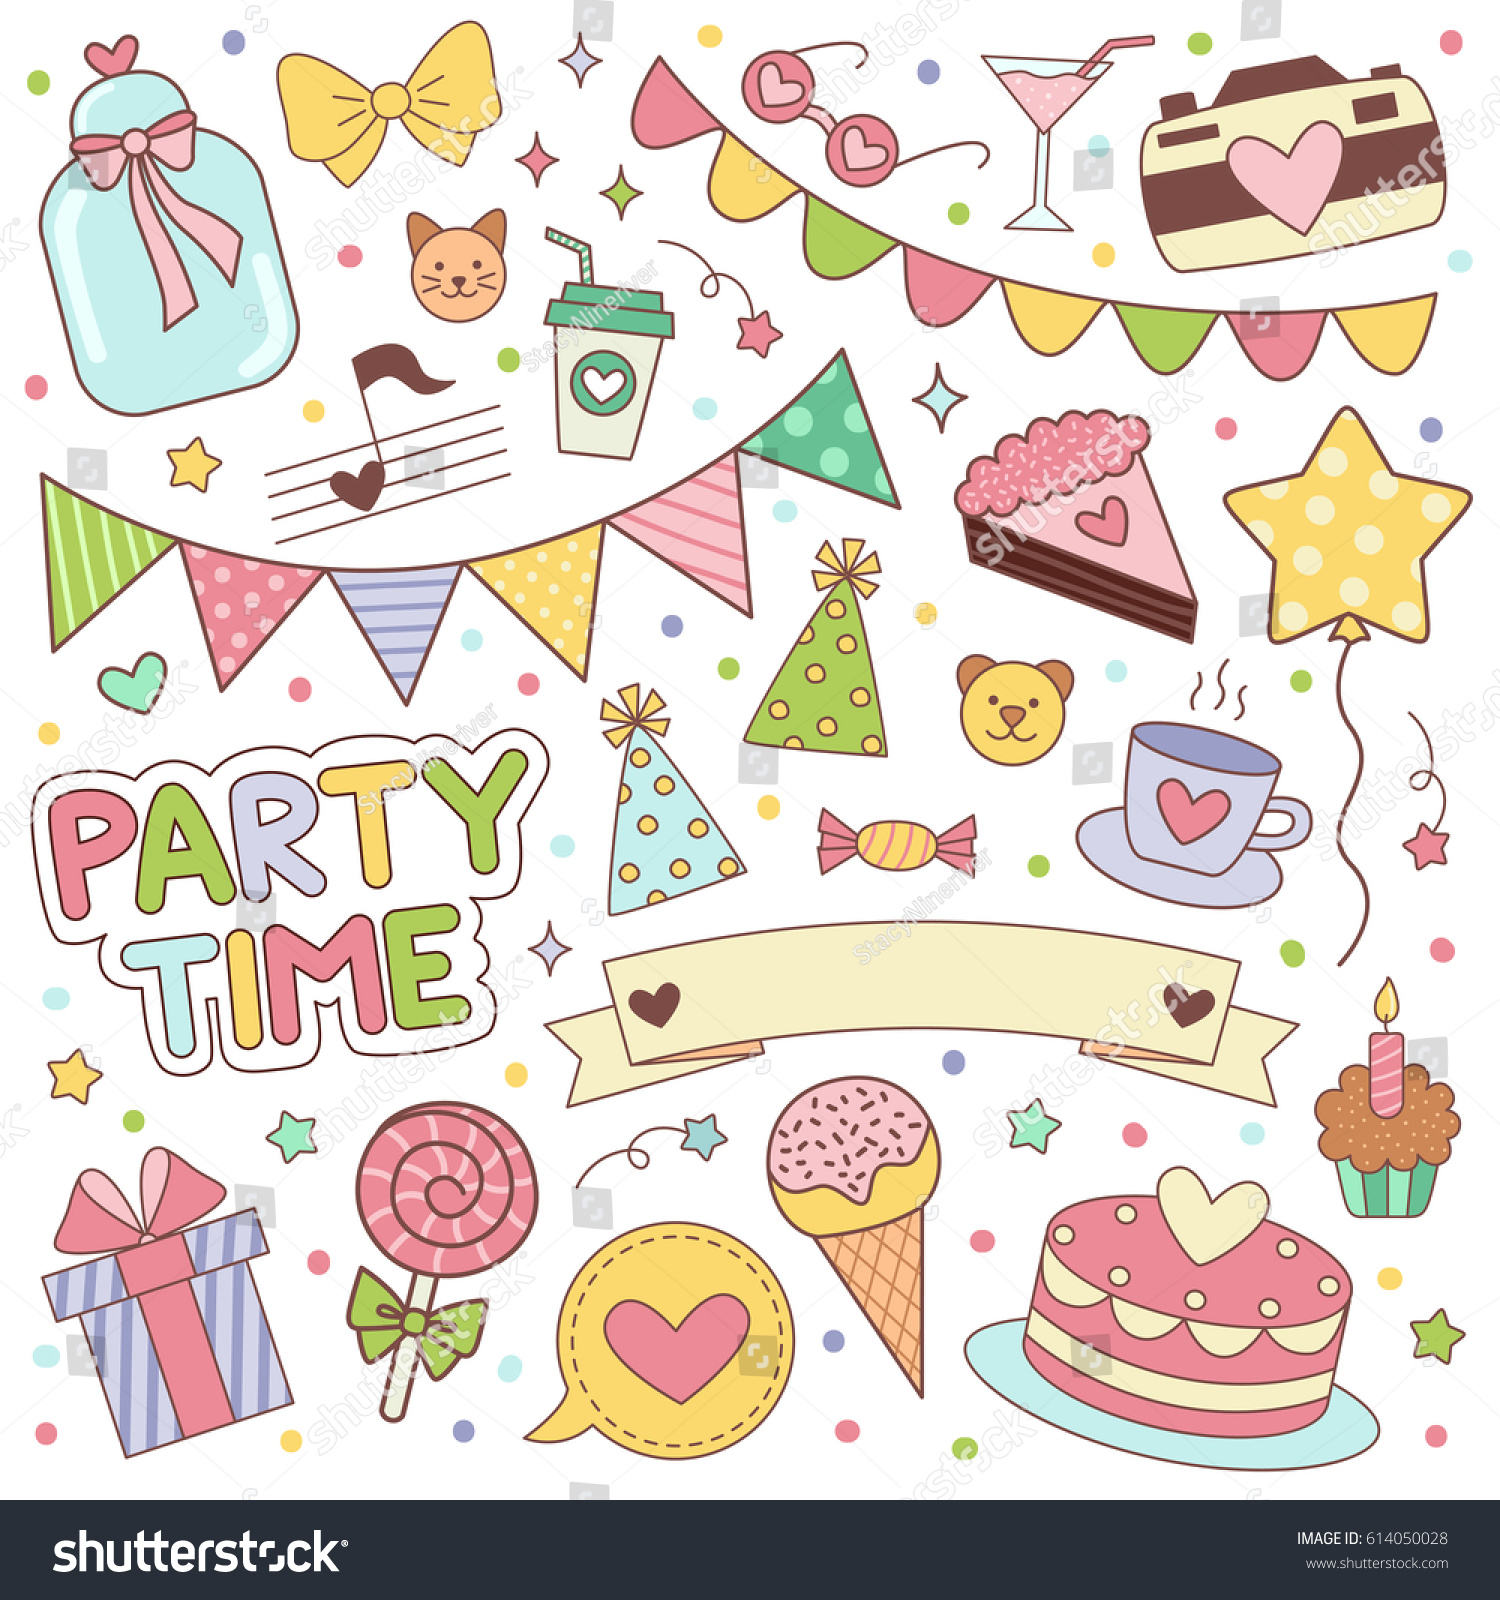 birthday photo stickers ; stock-vector-happy-birthday-stickers-set-vector-illustrartion-for-scrapbooking-and-decoration-planning-diary-614050028